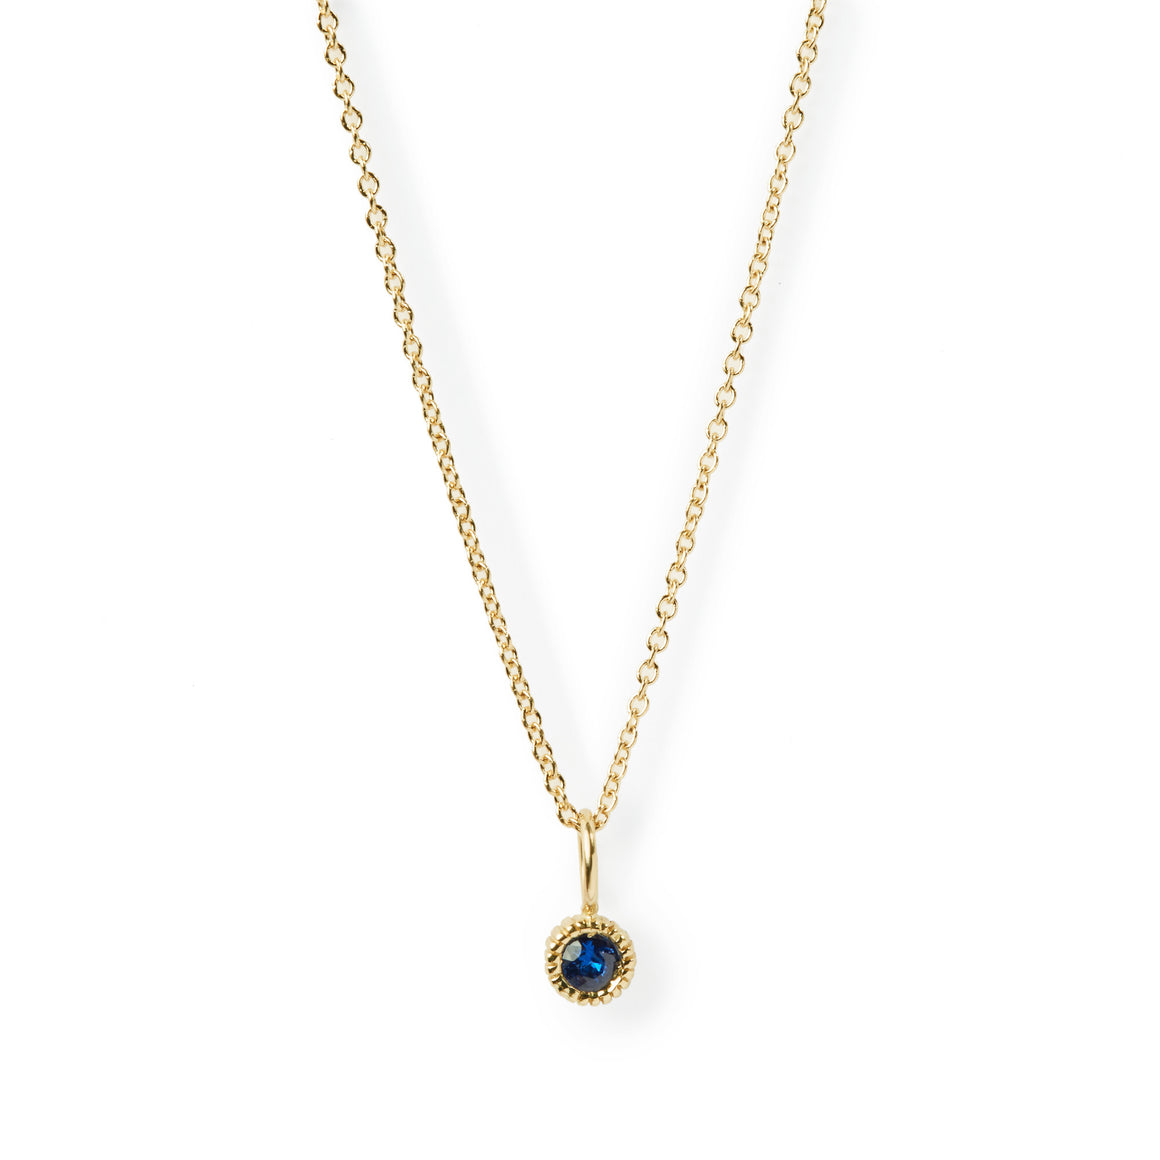 YOUTH SAPPHIRE CHARM NECKLACE